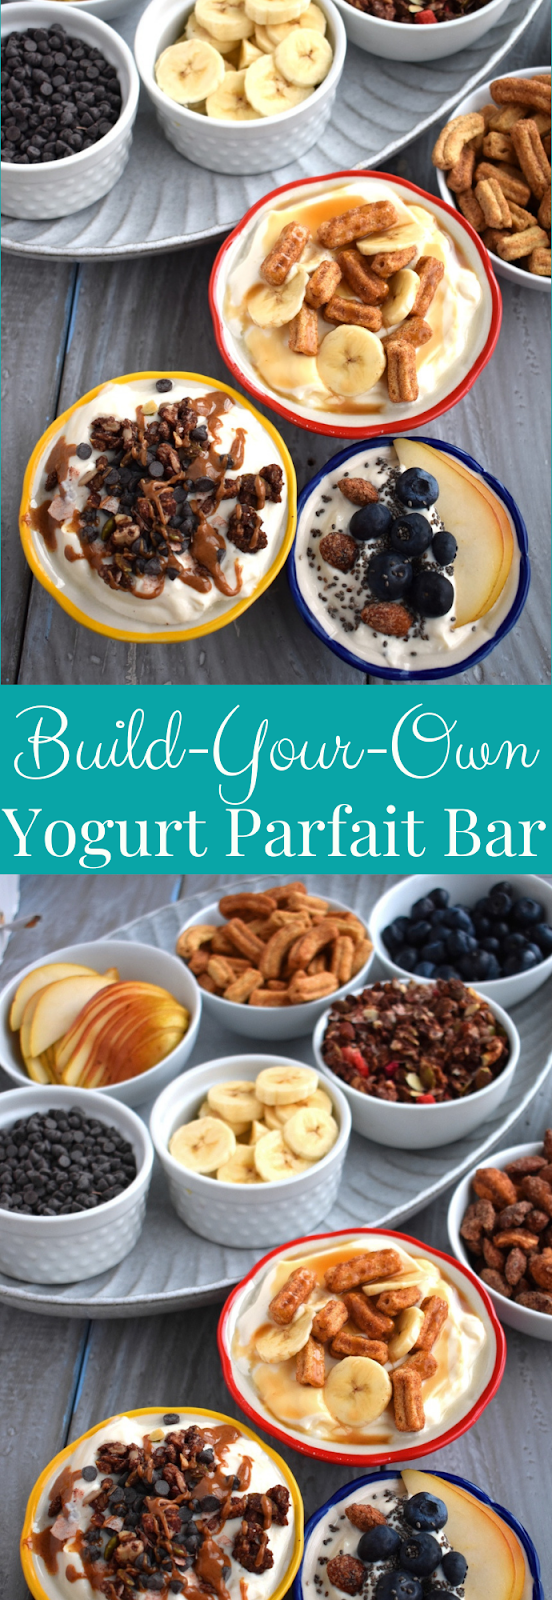 Build-Your-Own Yogurt Parfait Bar Toppings